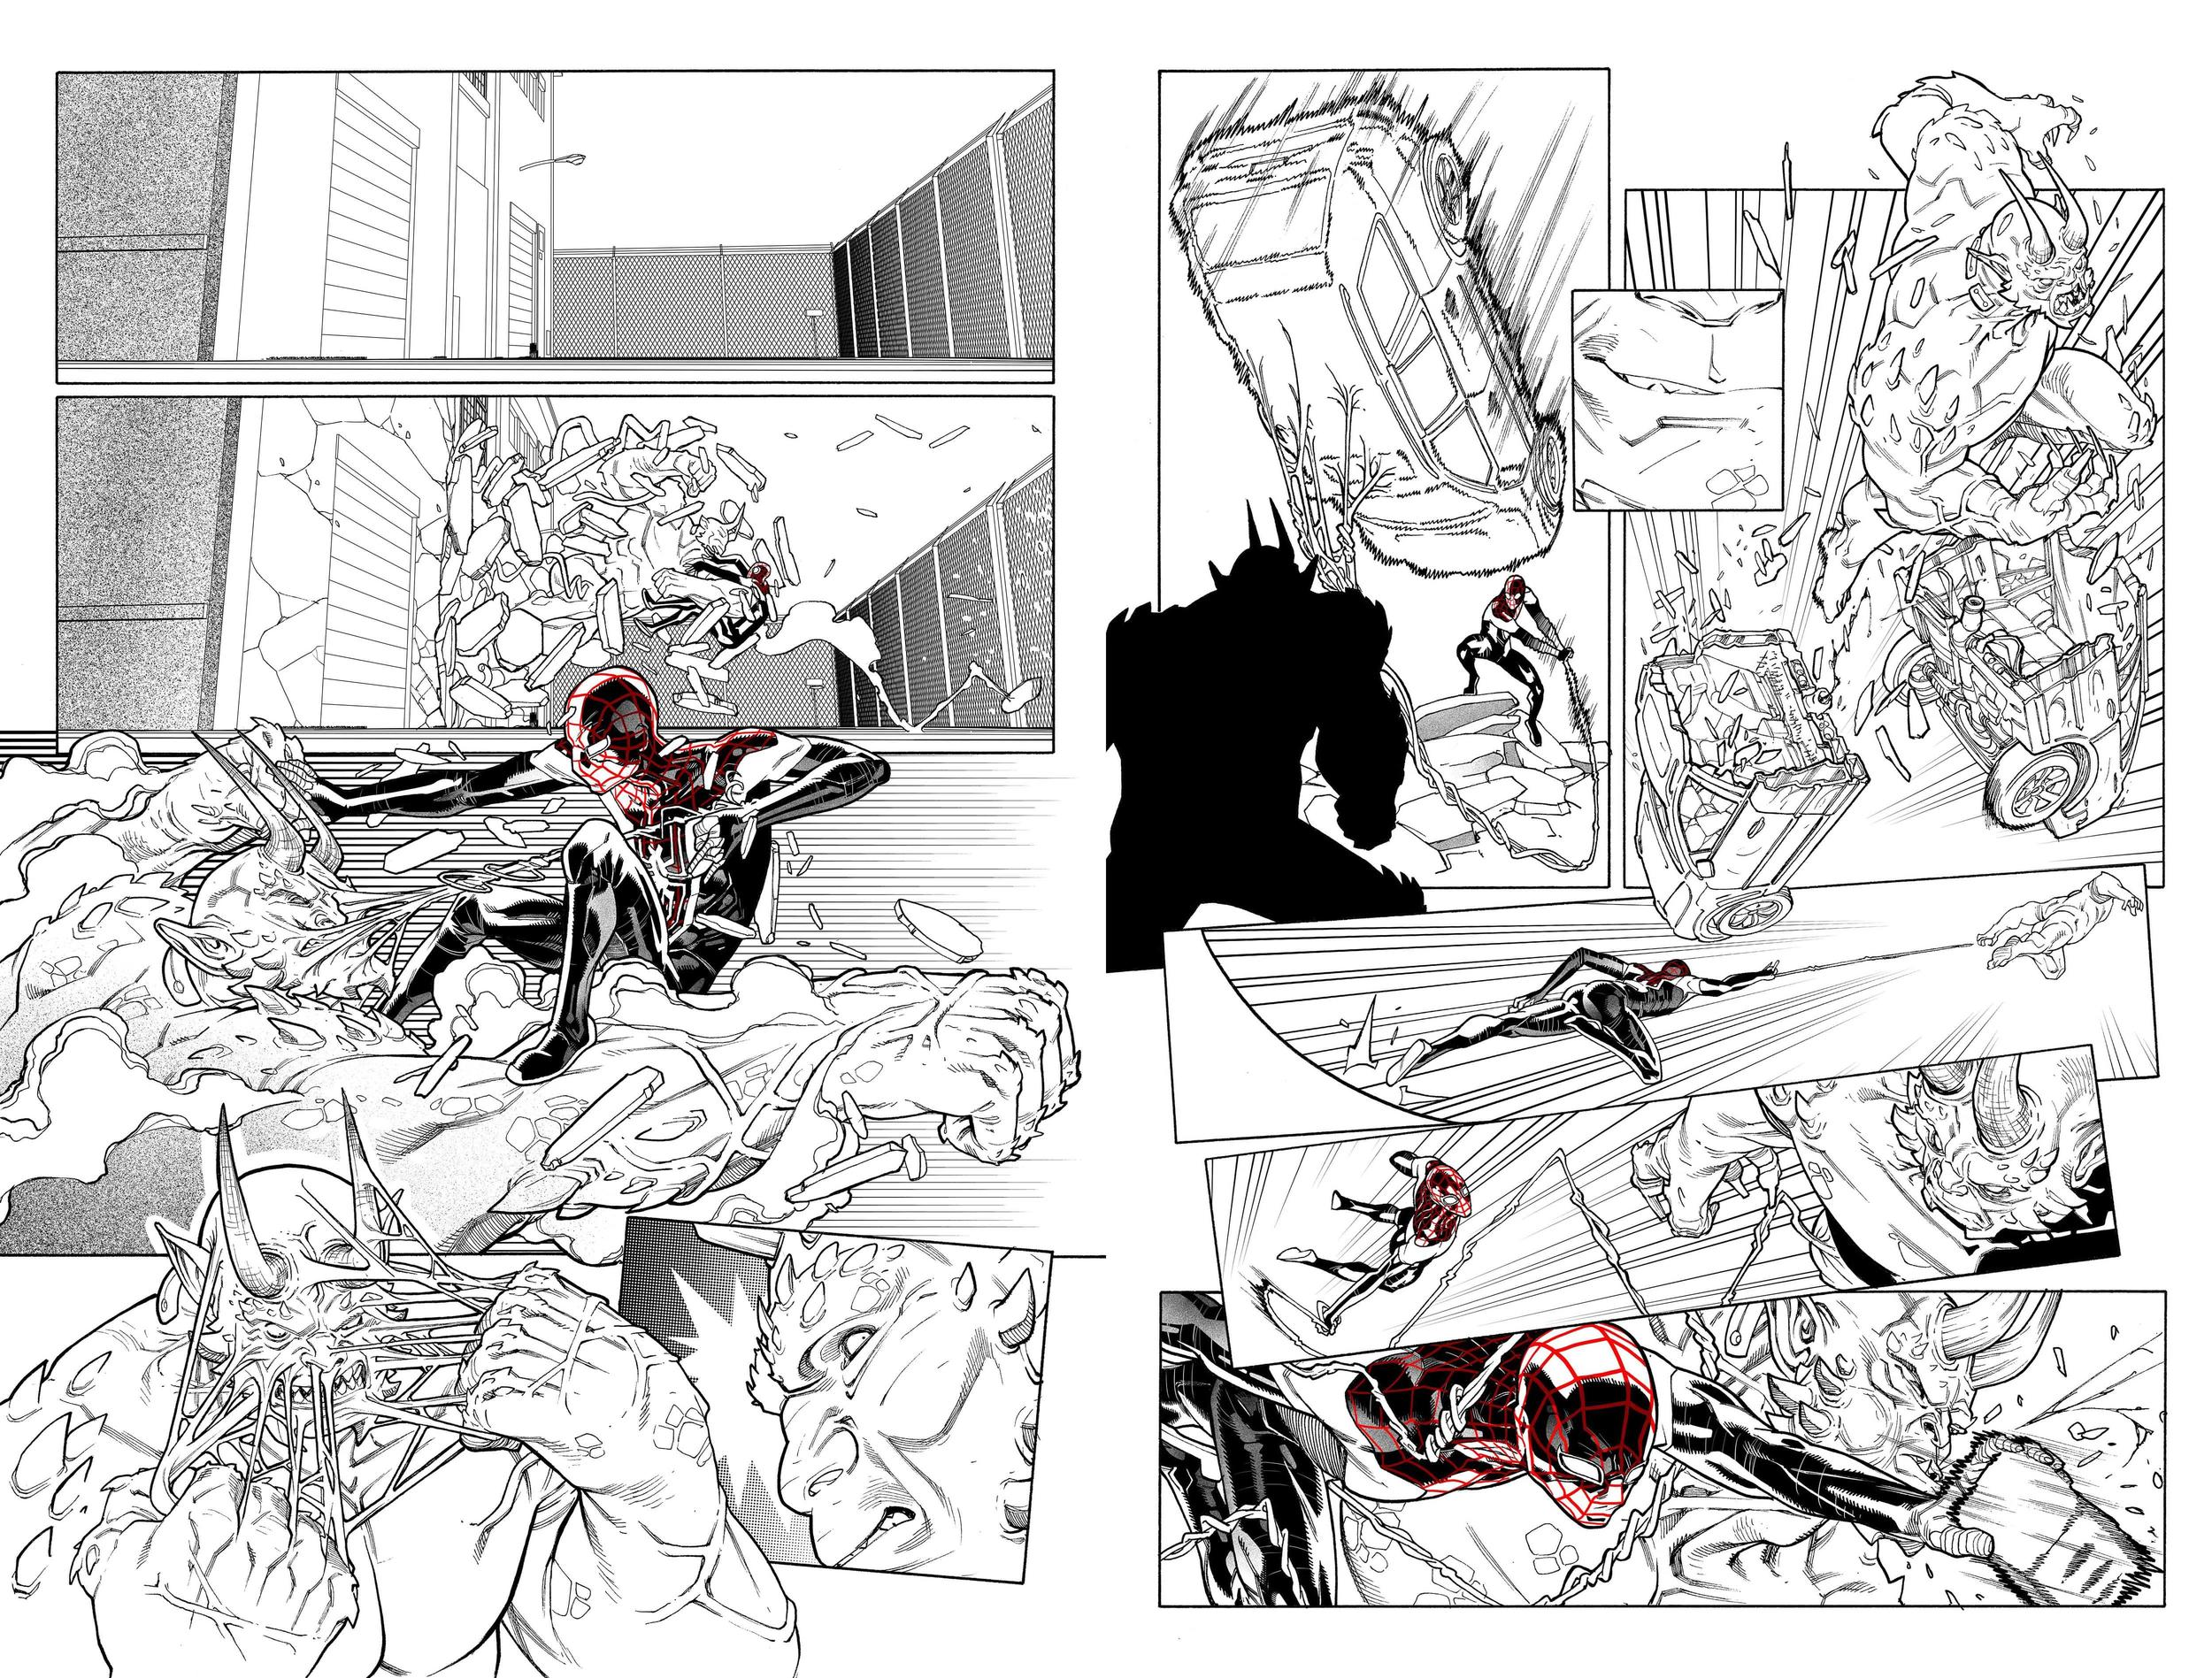 Process pages 13-14